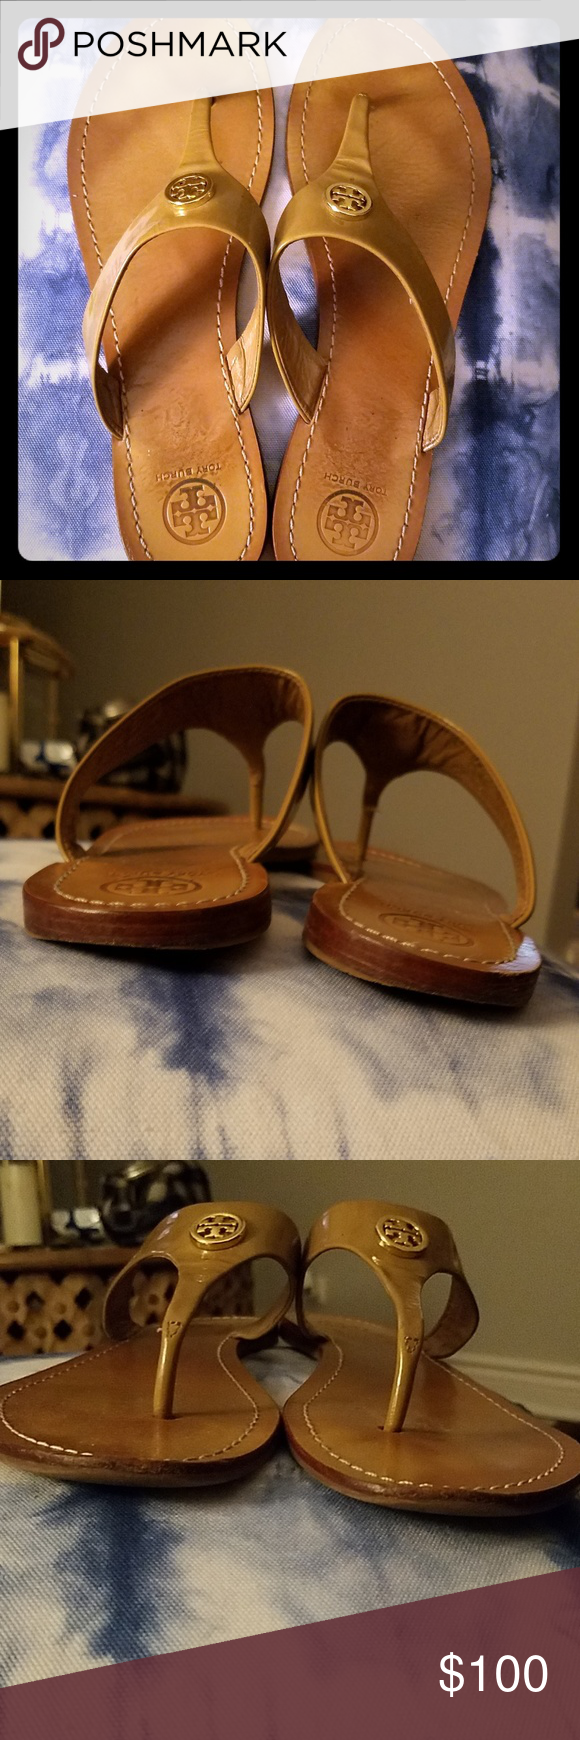 d4c5beca3e6f I just added this listing on Poshmark  Tory Burch Sandals.  shopmycloset   poshmark  fashion  shopping  style  forsale  Tory Burch  Shoes